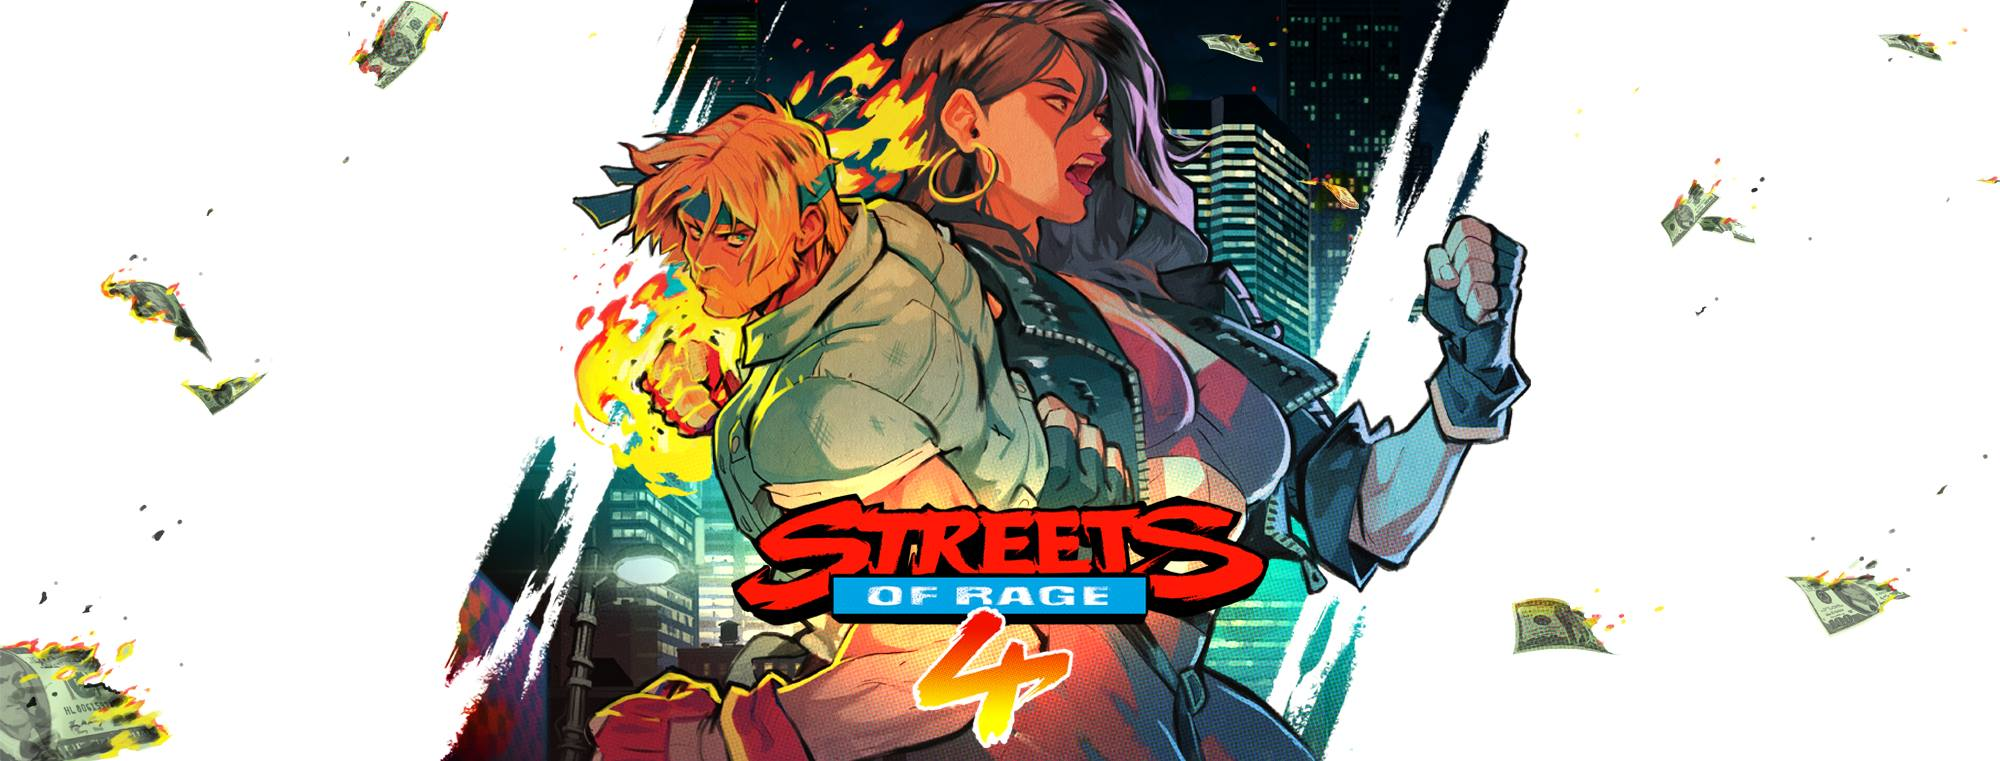 Watch: 'Streets of Rage 4' reveal trailer